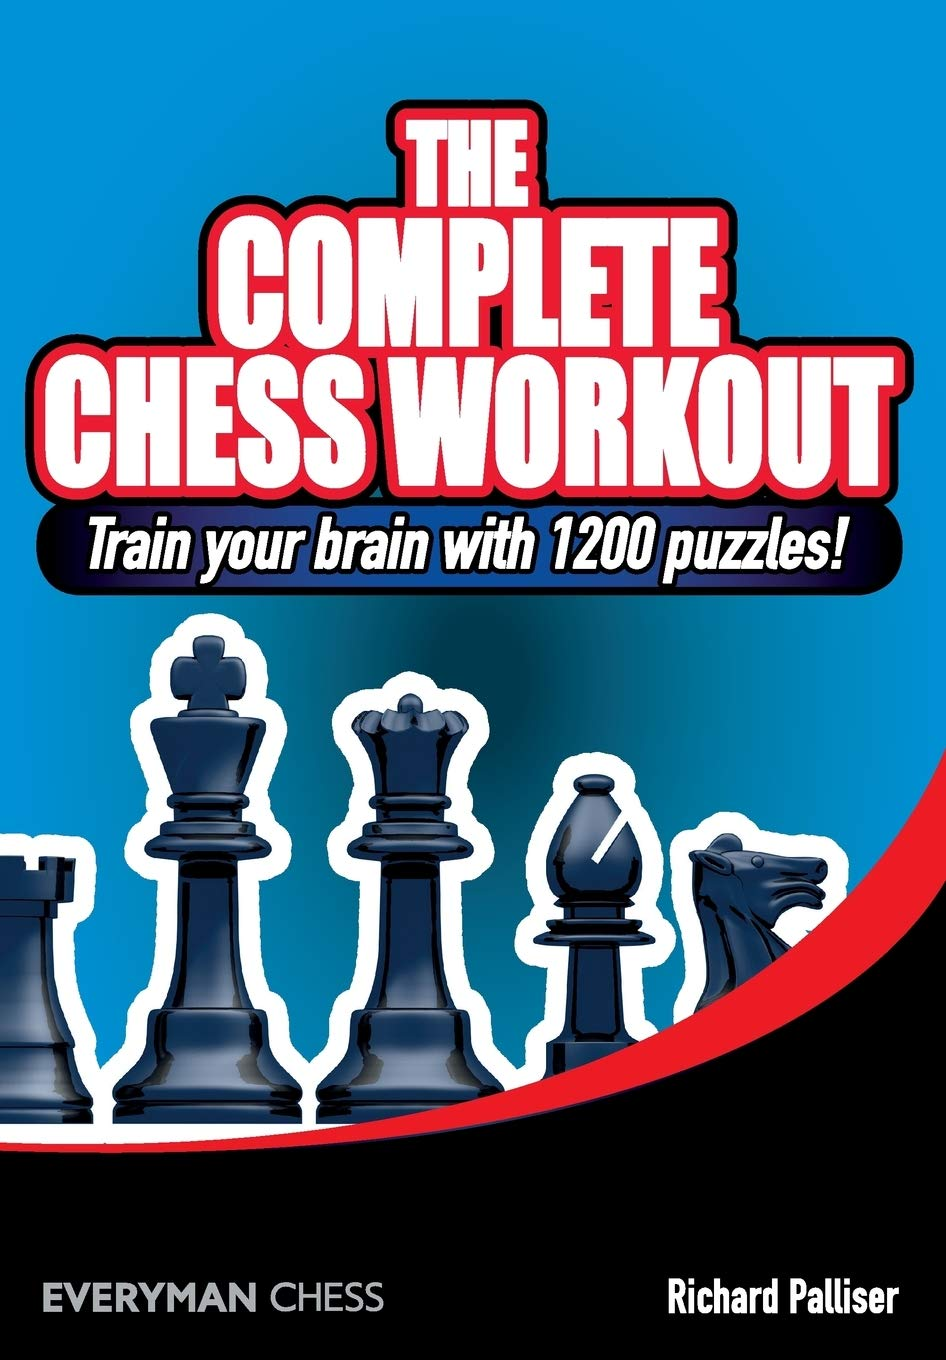 The Complete Chess Workout, Everyman, 2007